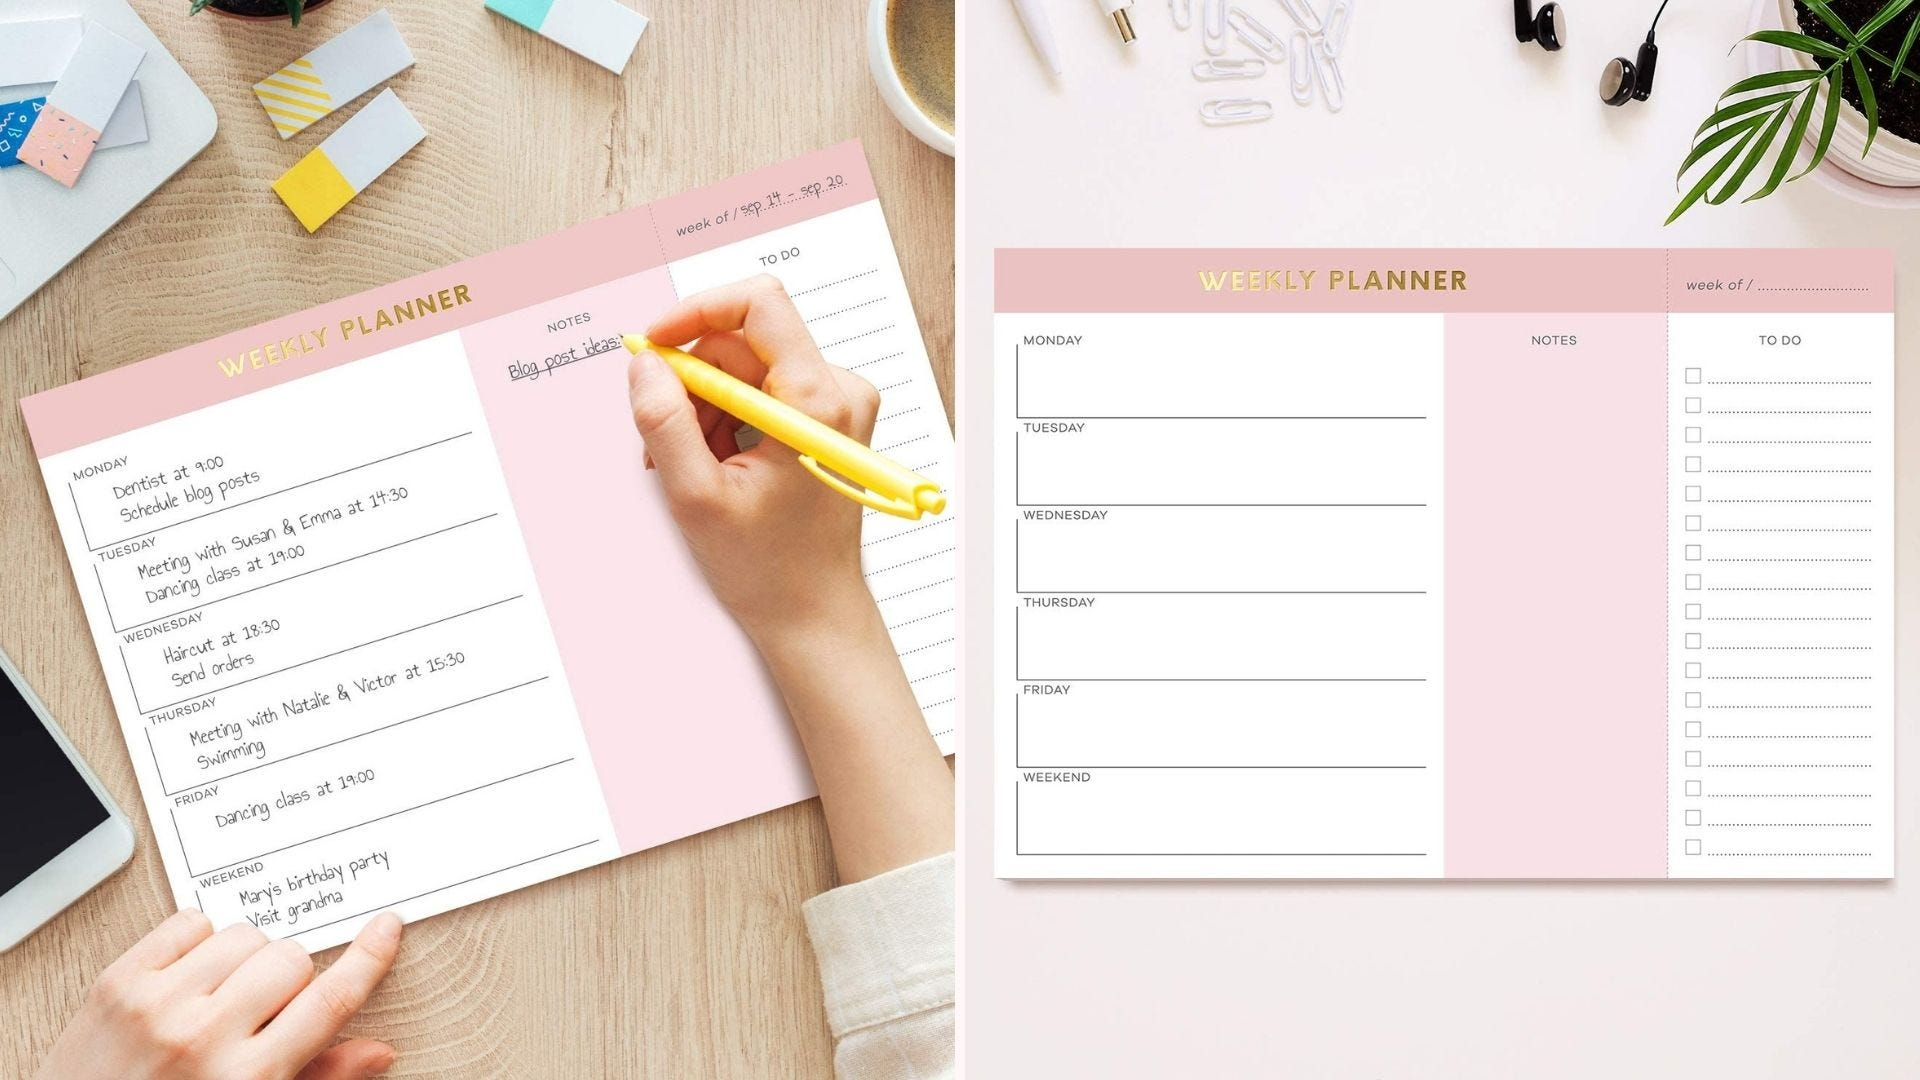 pink accented weekly planner with extra sections for notes